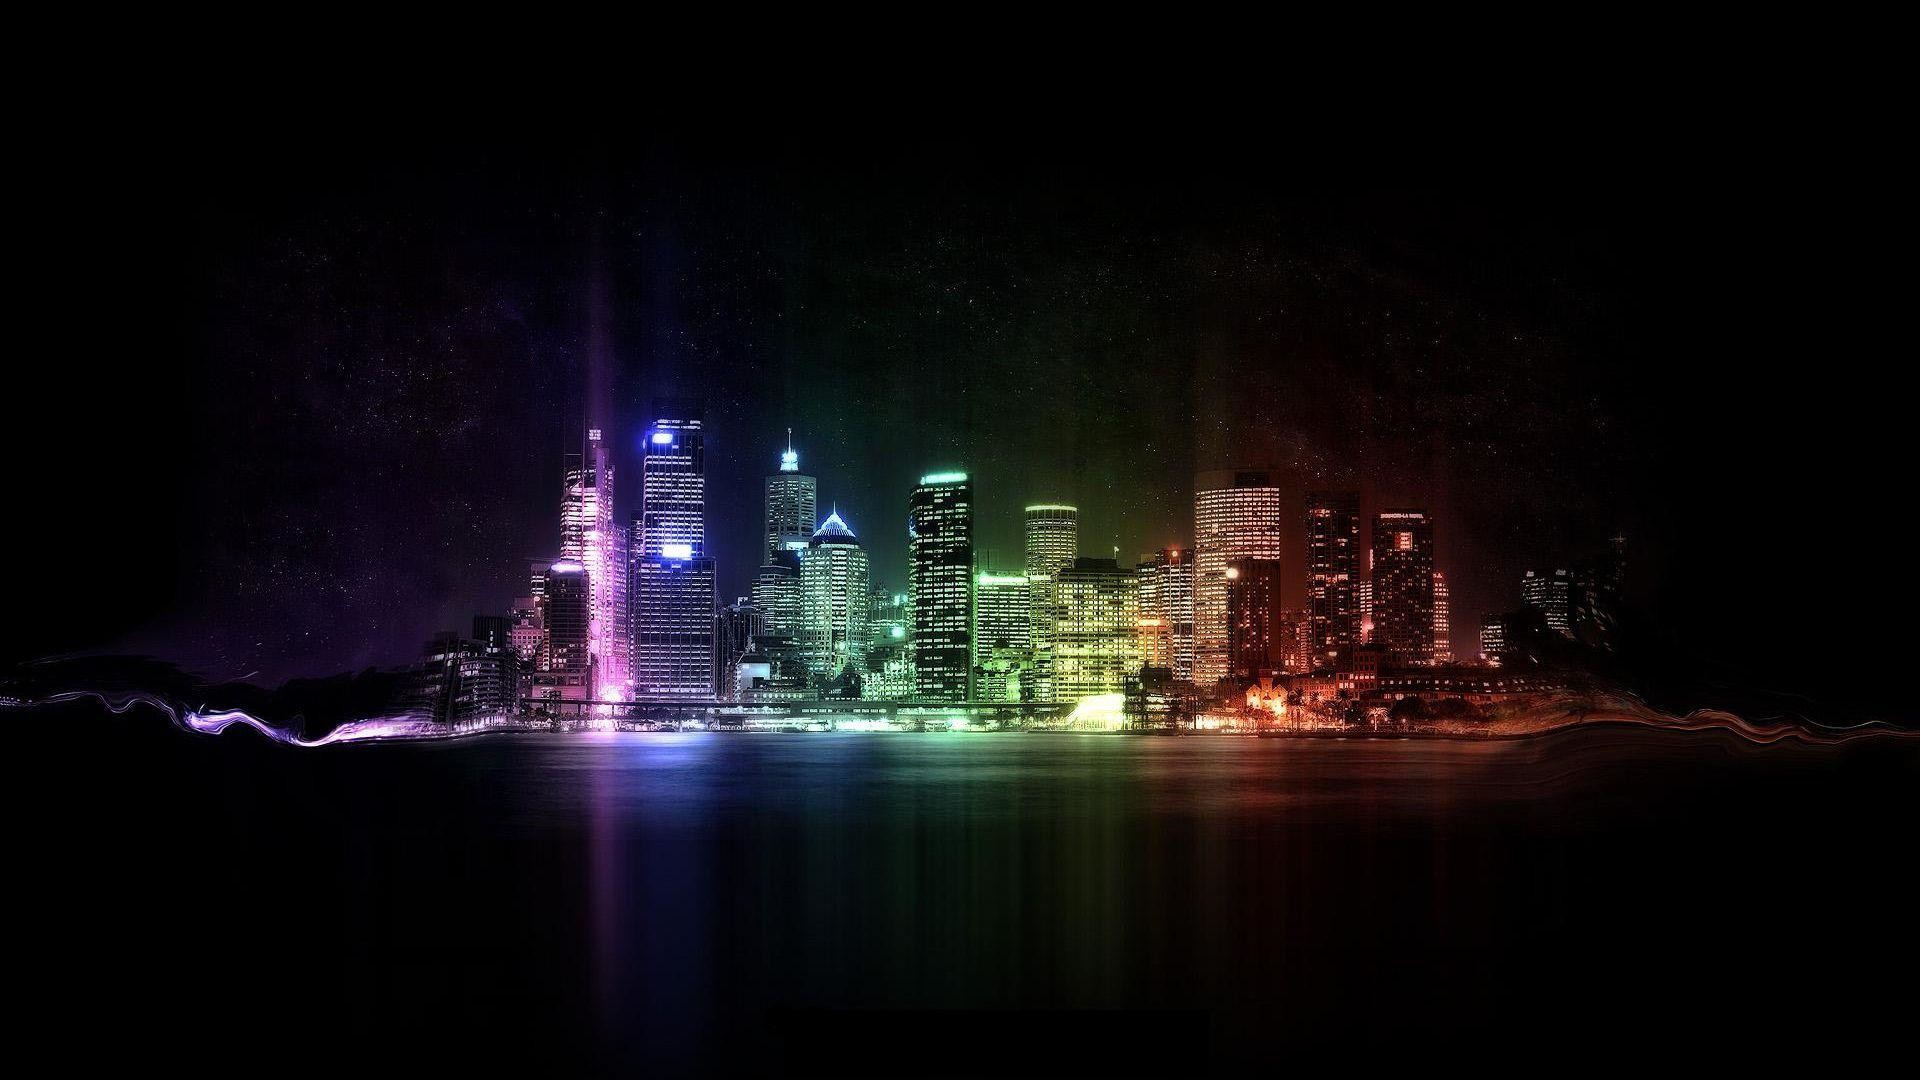 City Of Lights Wallpapers   HD Wallpapers